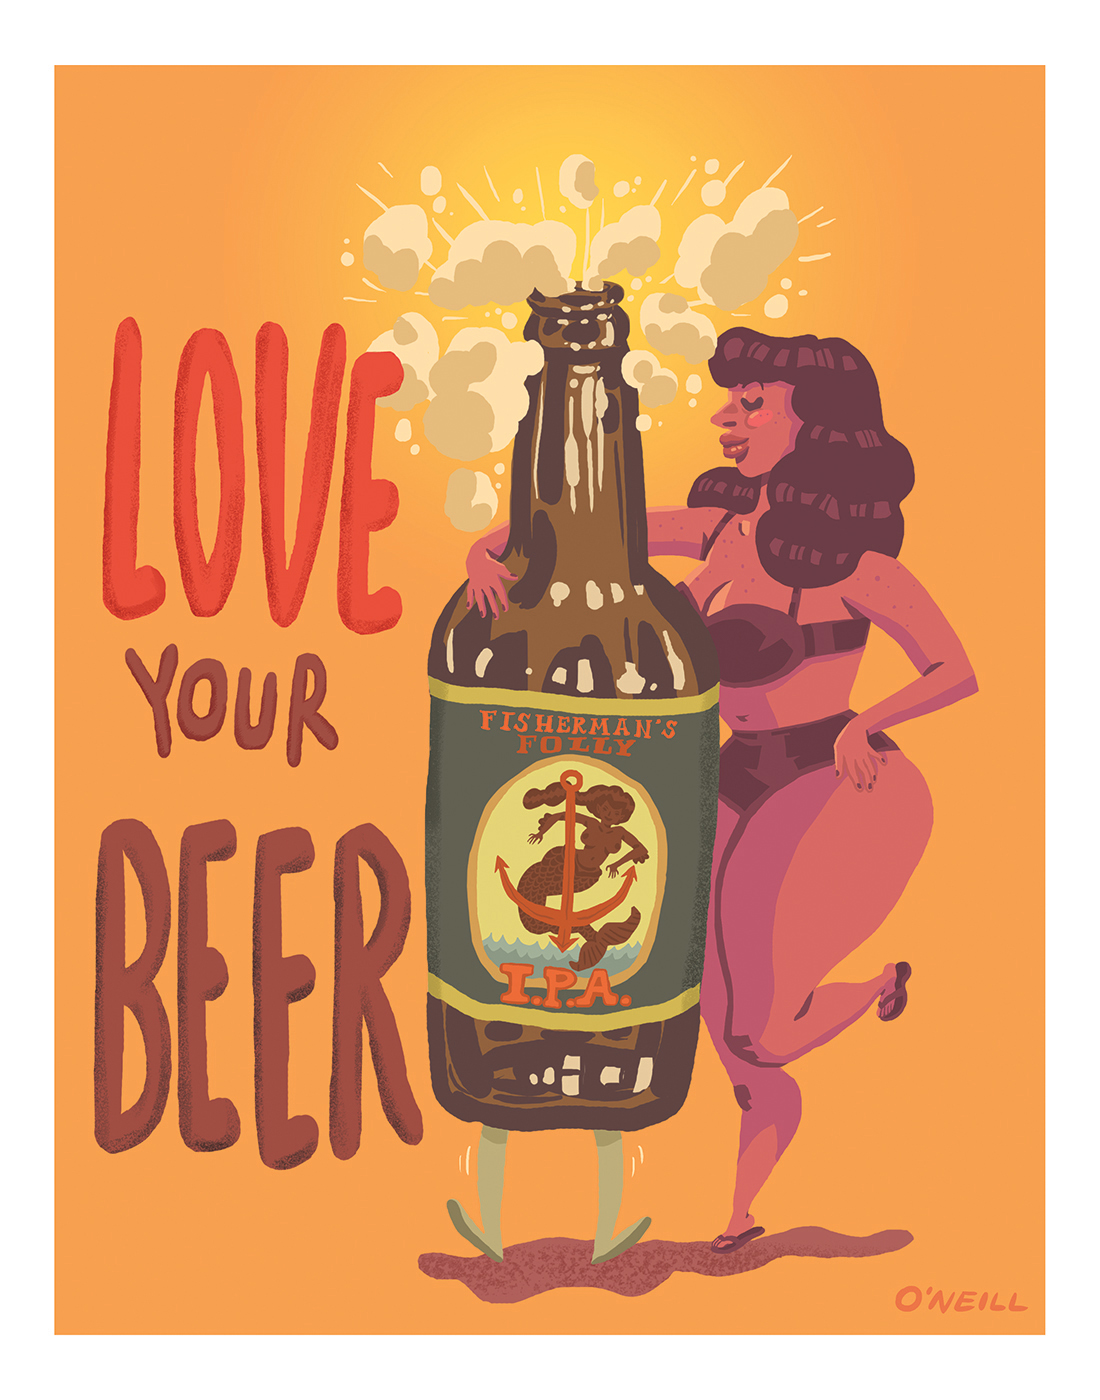 Love Your Beer